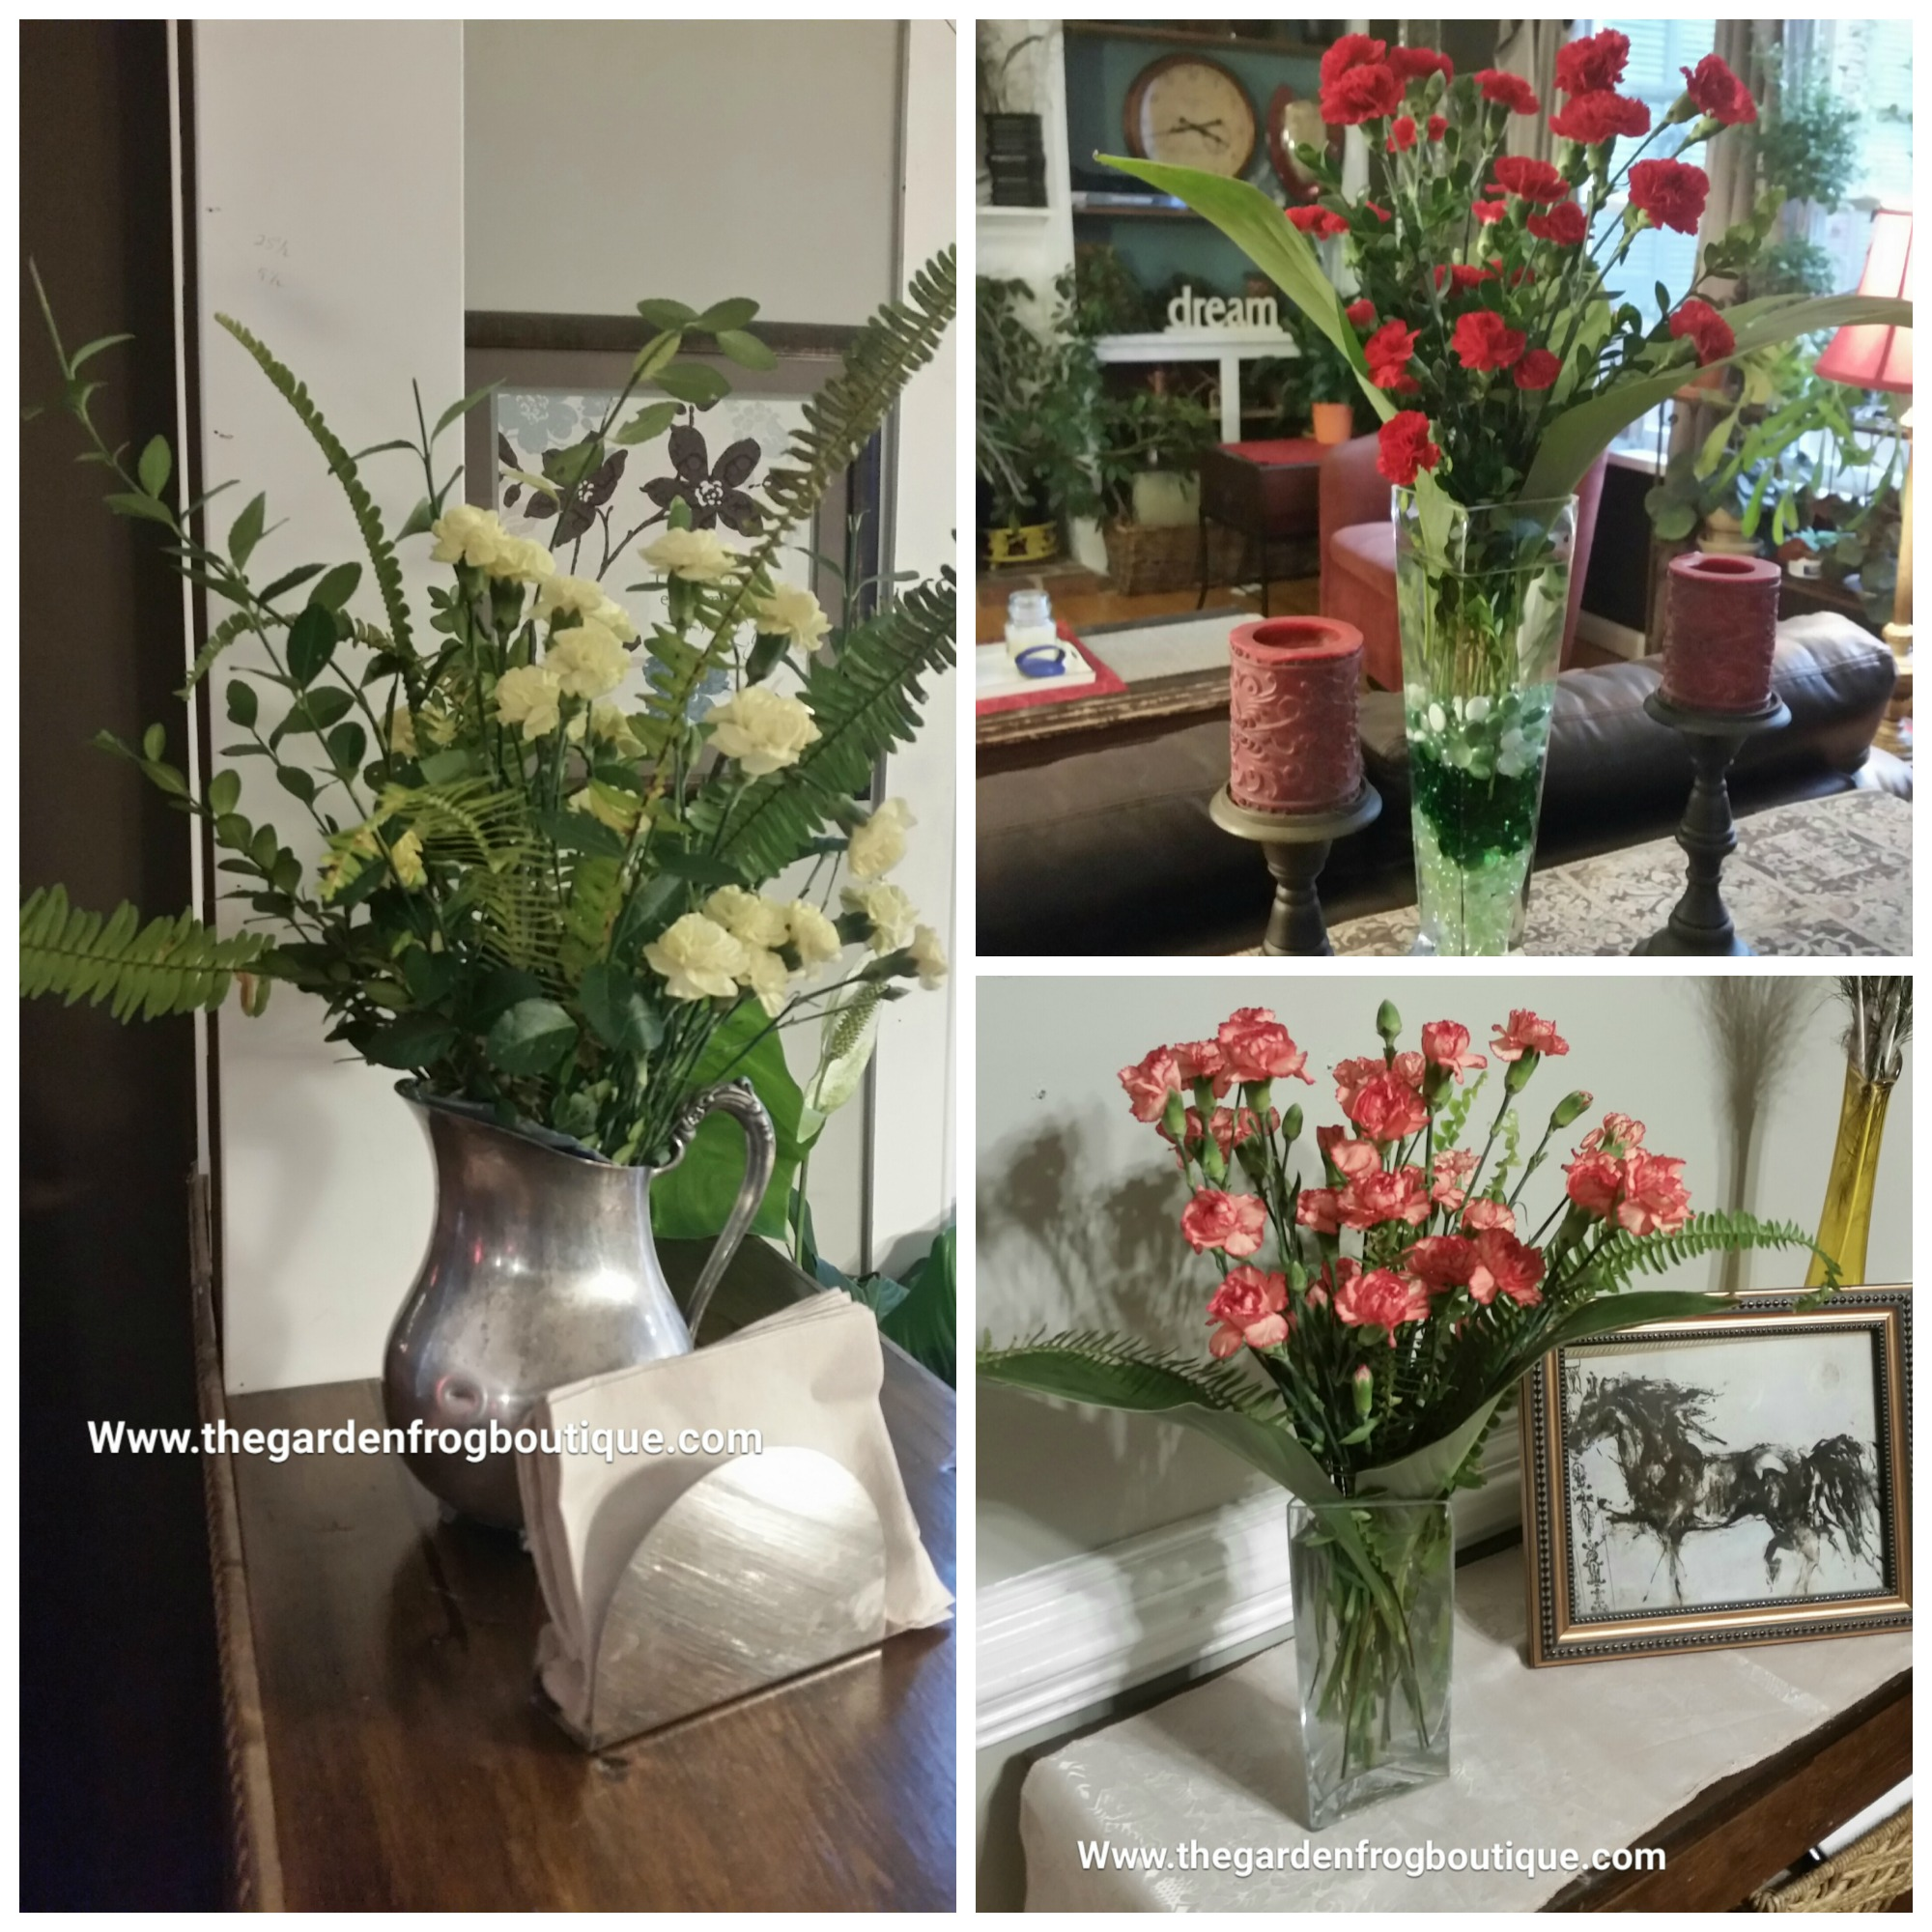 7 tips to create beautiful and inexpensive flower arrangements the i love fresh flowers and bouquets but sometimes they are very expensive what if i told you that for less than 10 in many grocery stores you could create a izmirmasajfo